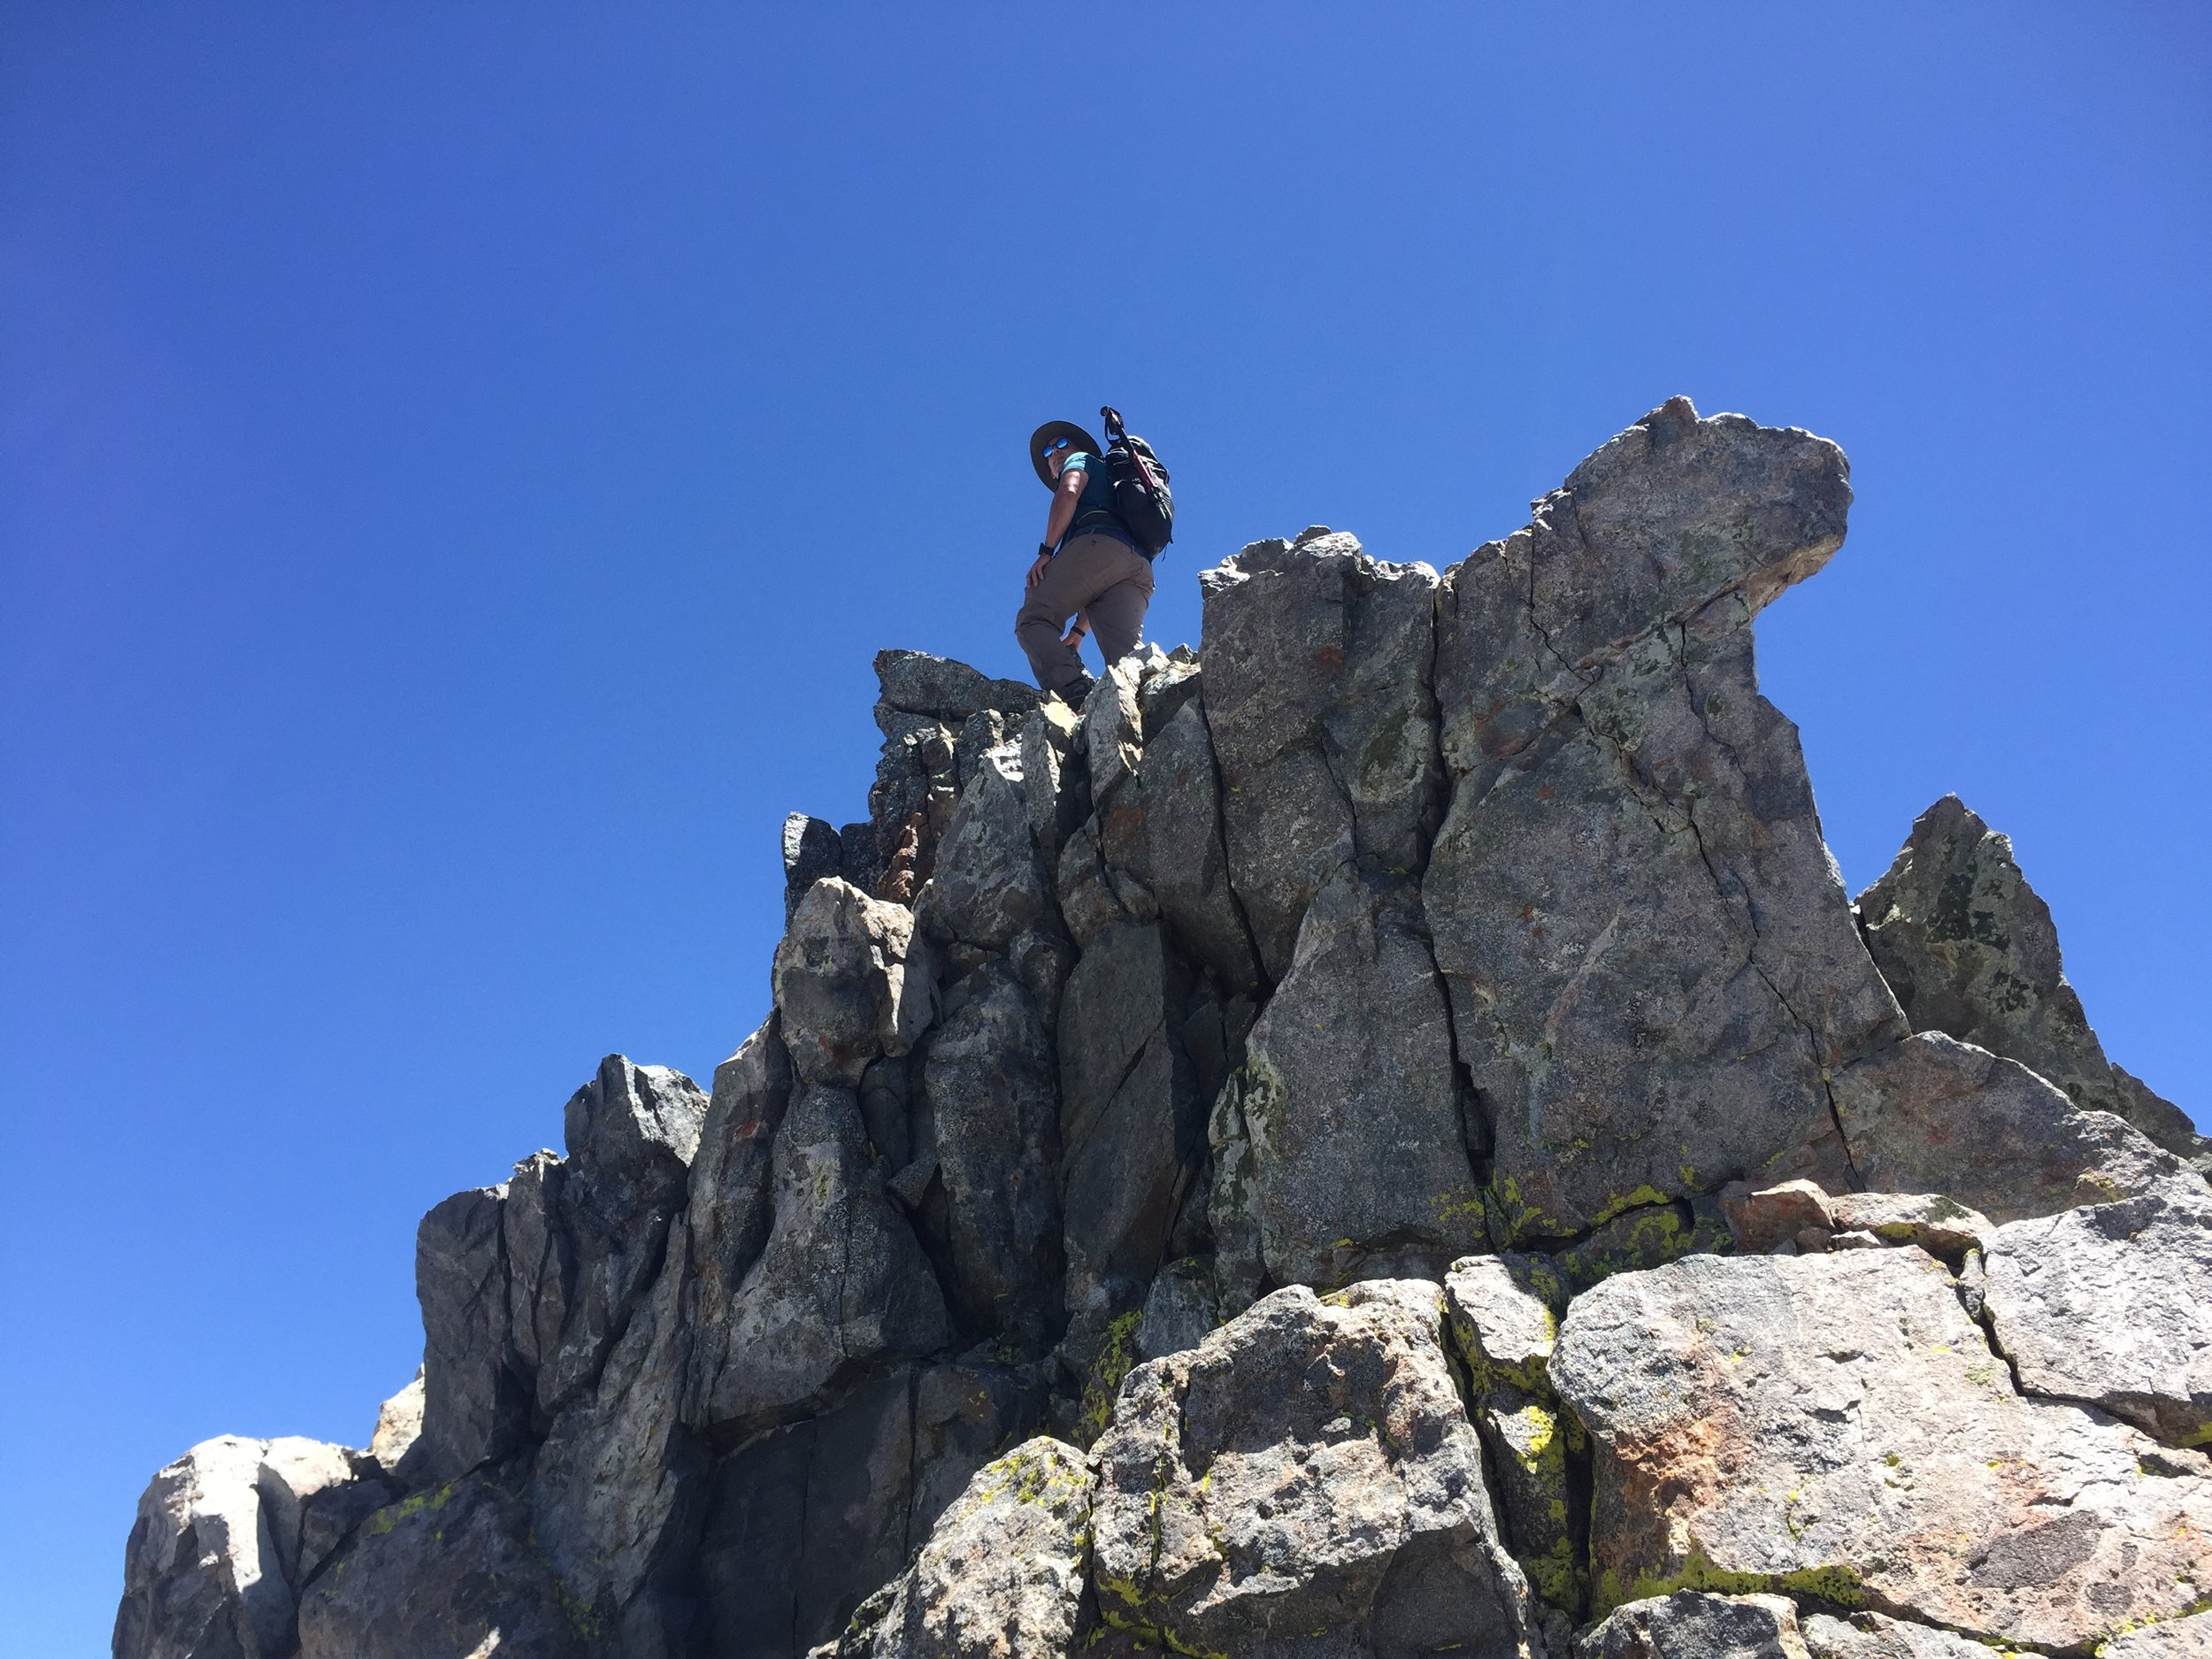 Benny on the South Summit